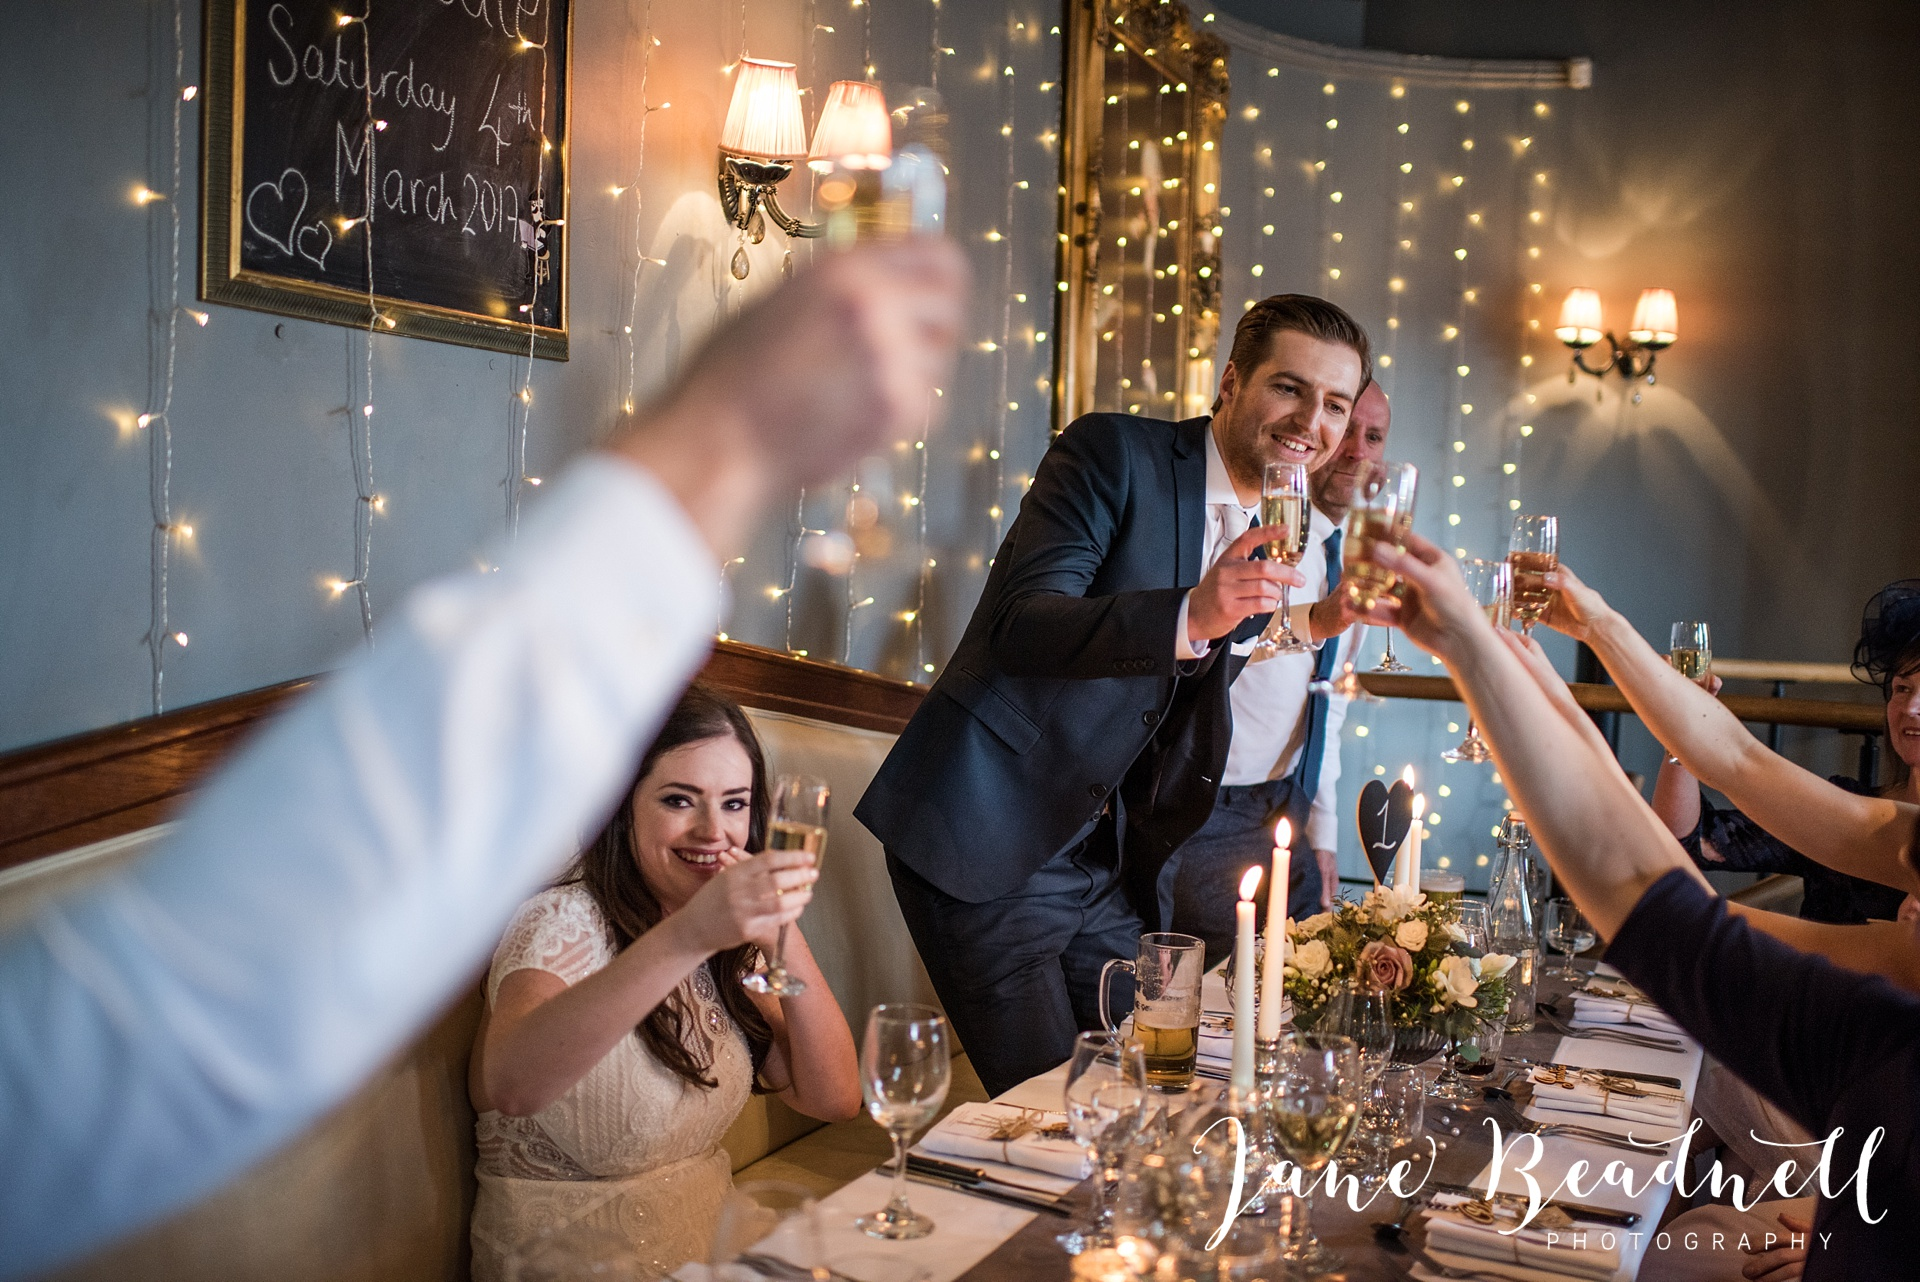 Wedding photography Cross Keys Leeds Wedding Jane Beadnell Photography_0132